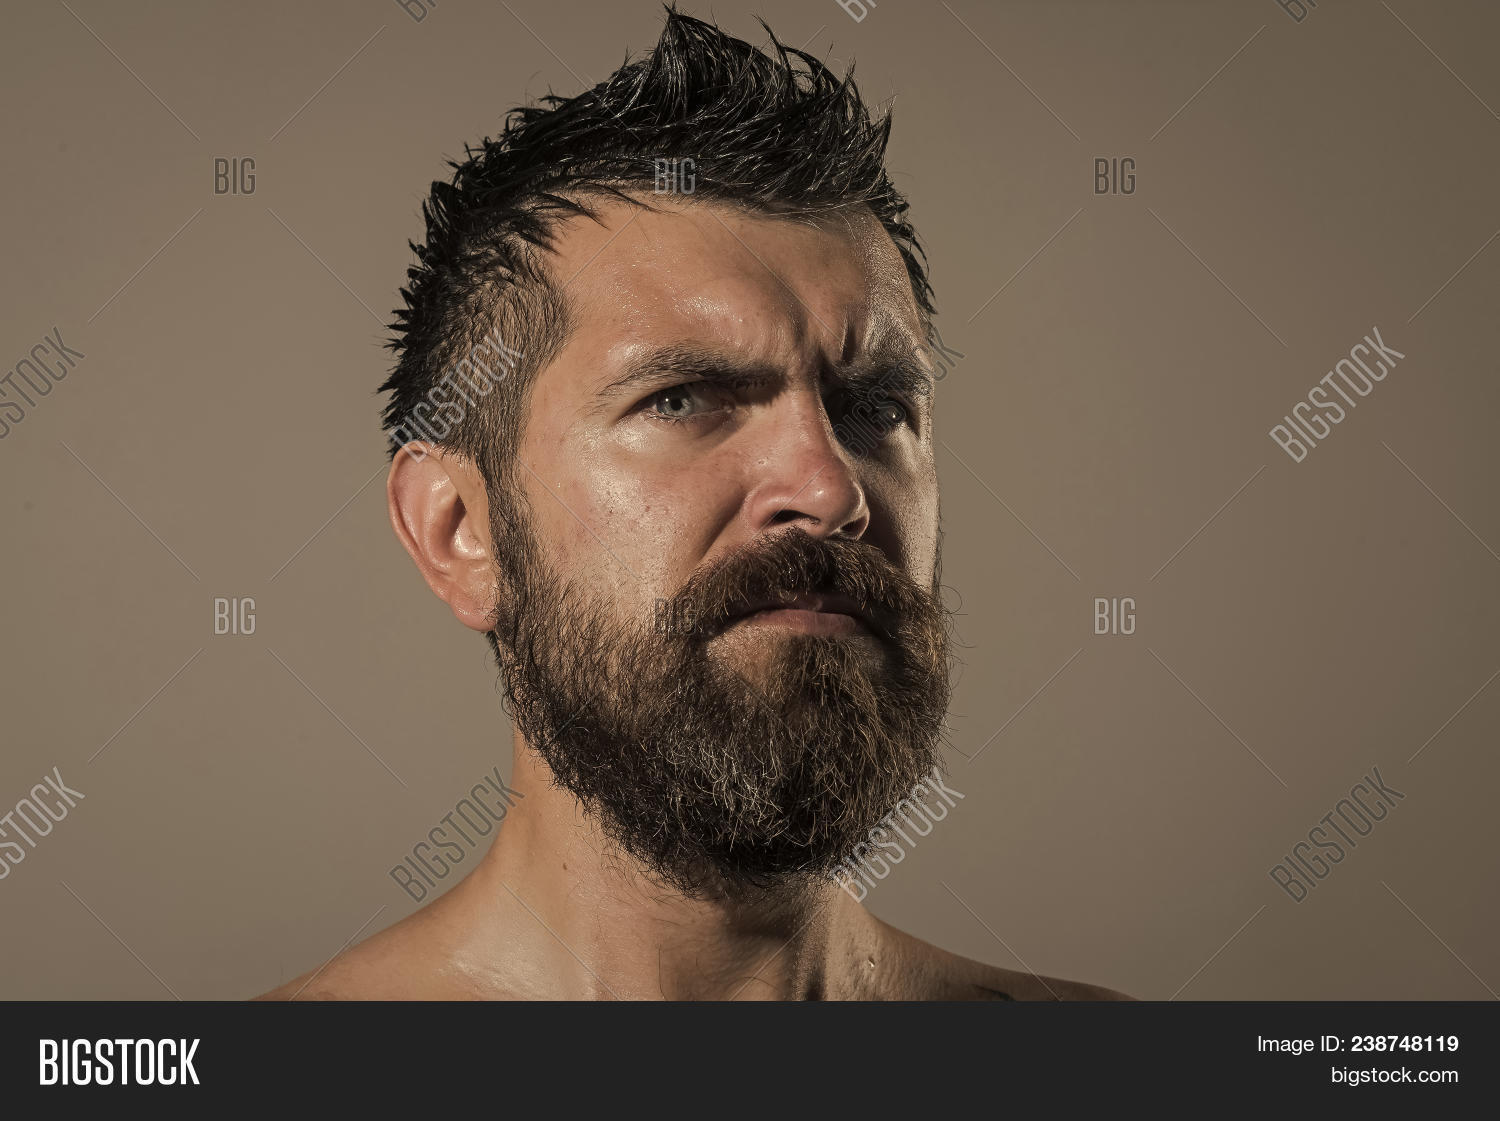 Serious face guy naked